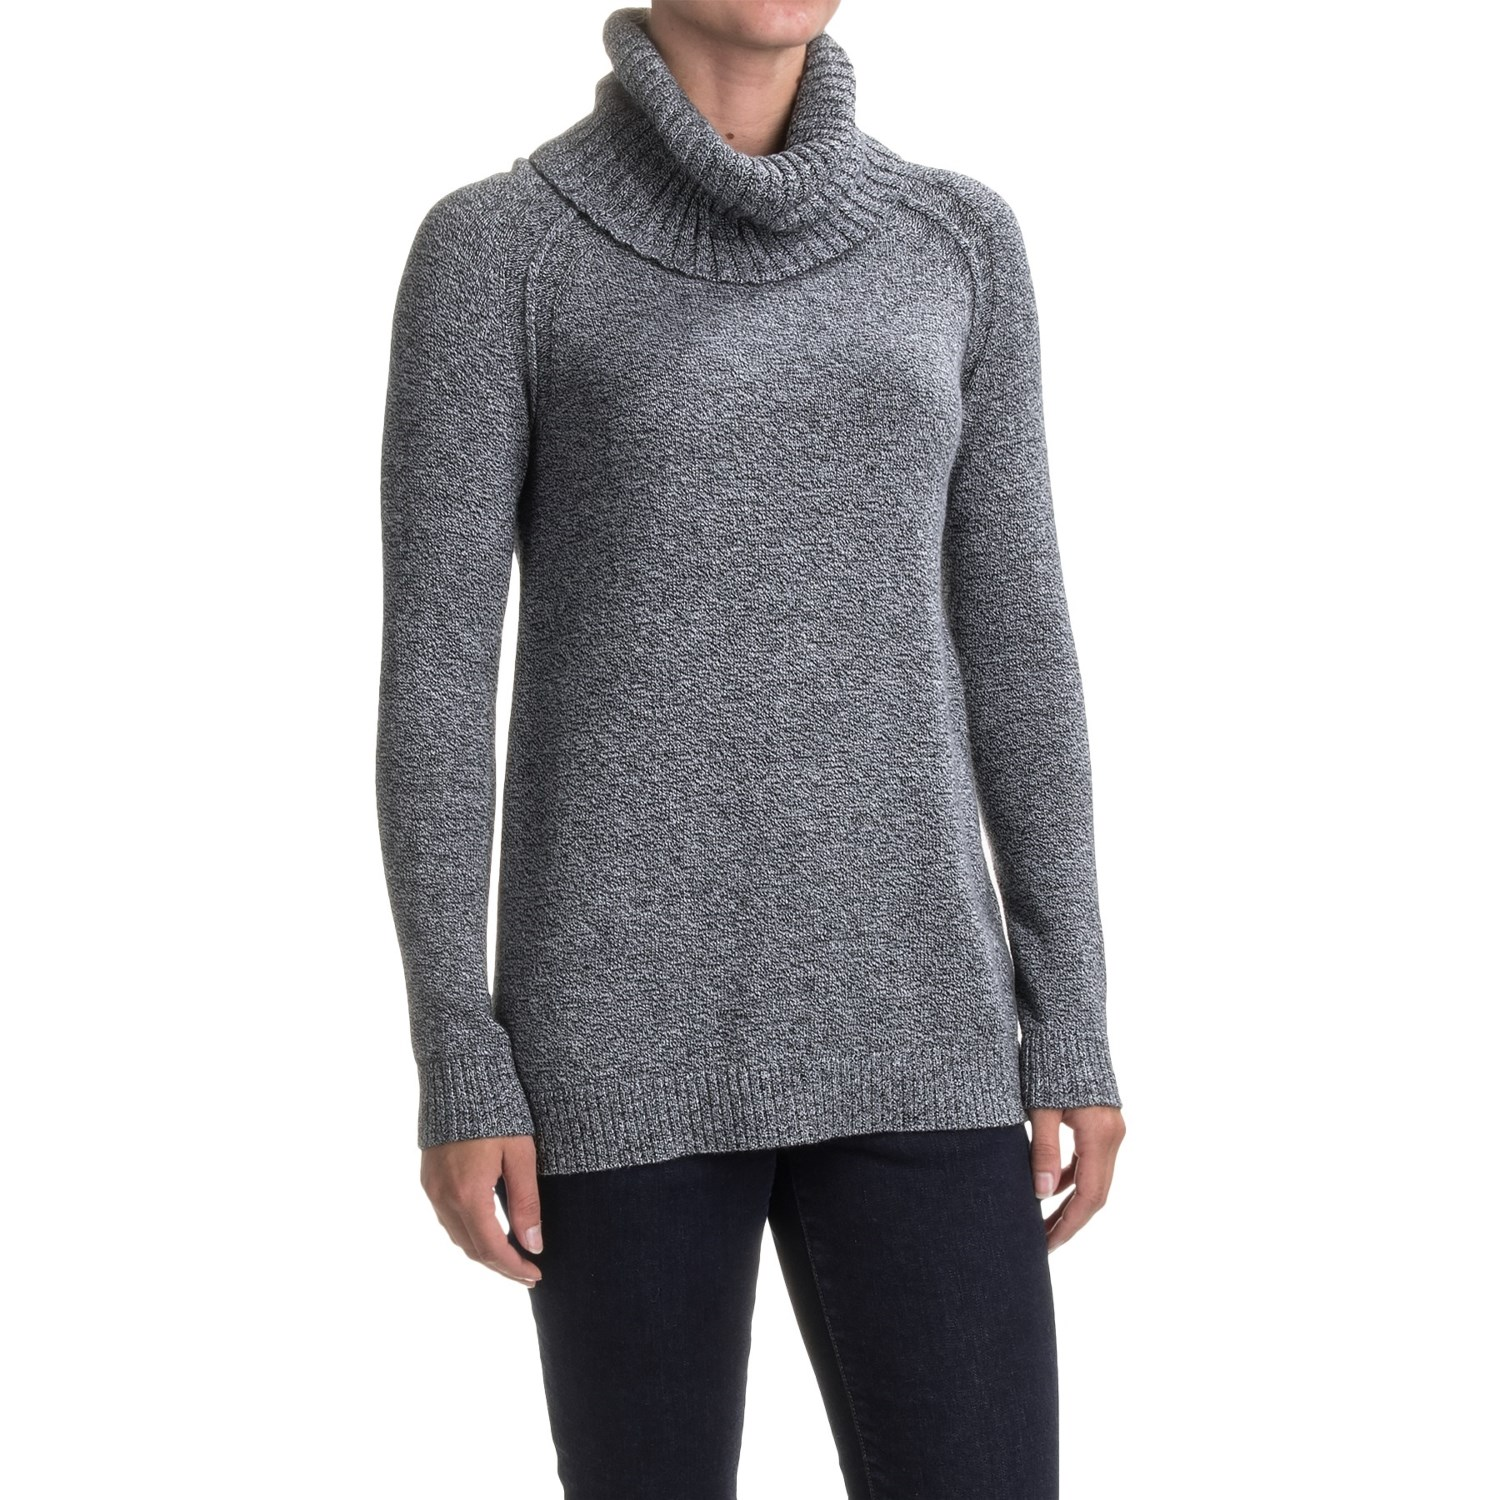 Lilla P Tunic Turtleneck Sweater (For Women)